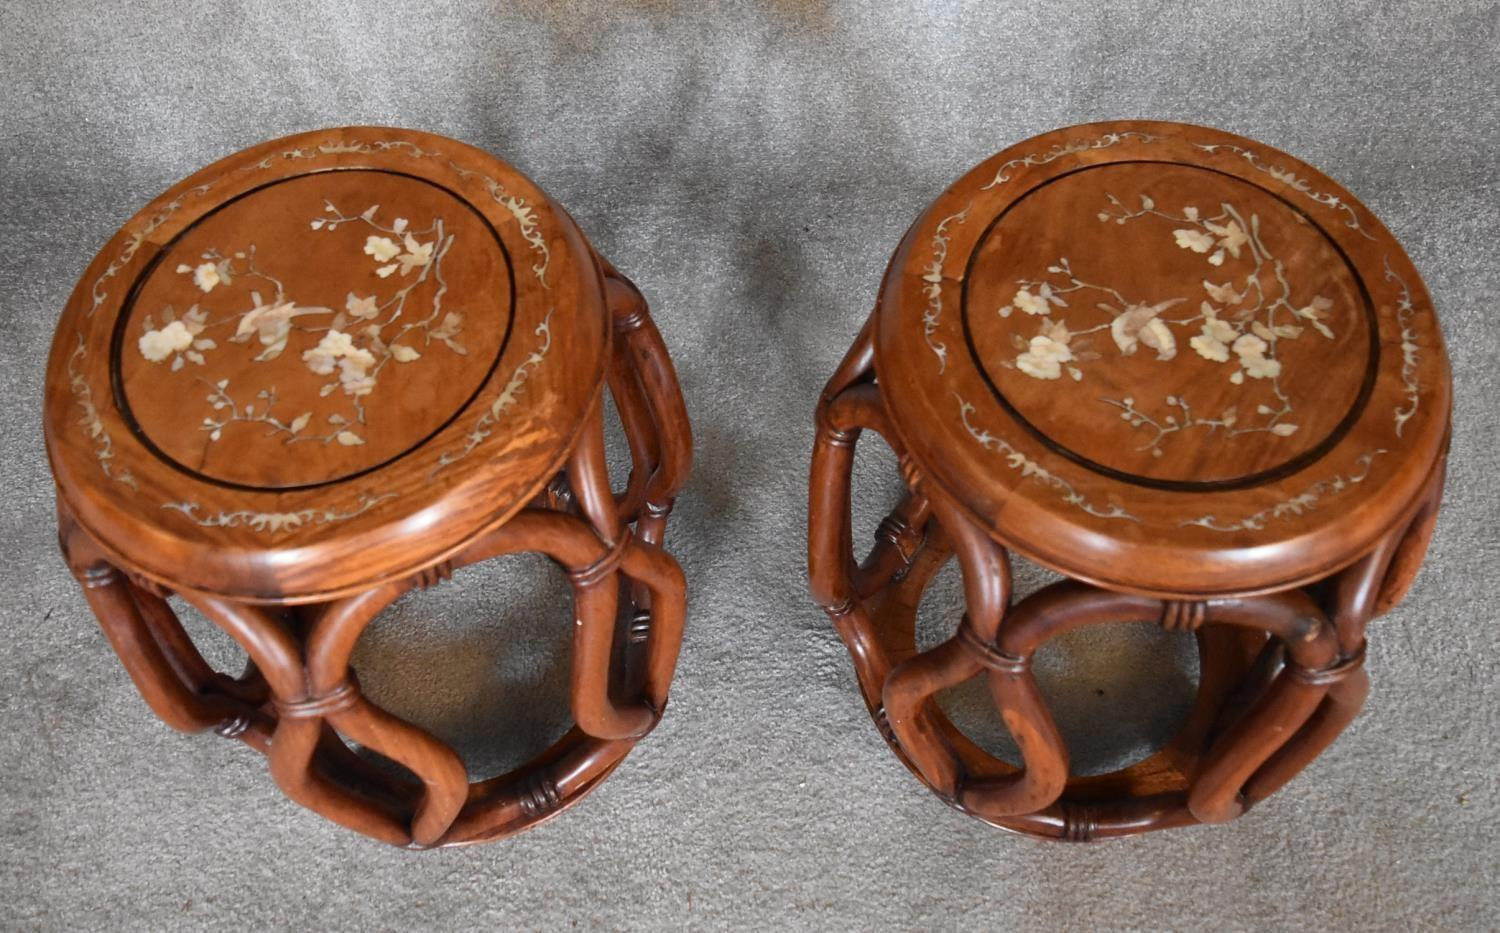 A pair of Chinese rosewood and mother of pearl inlaid barrel shaped stools with latticework sides. - Image 2 of 4